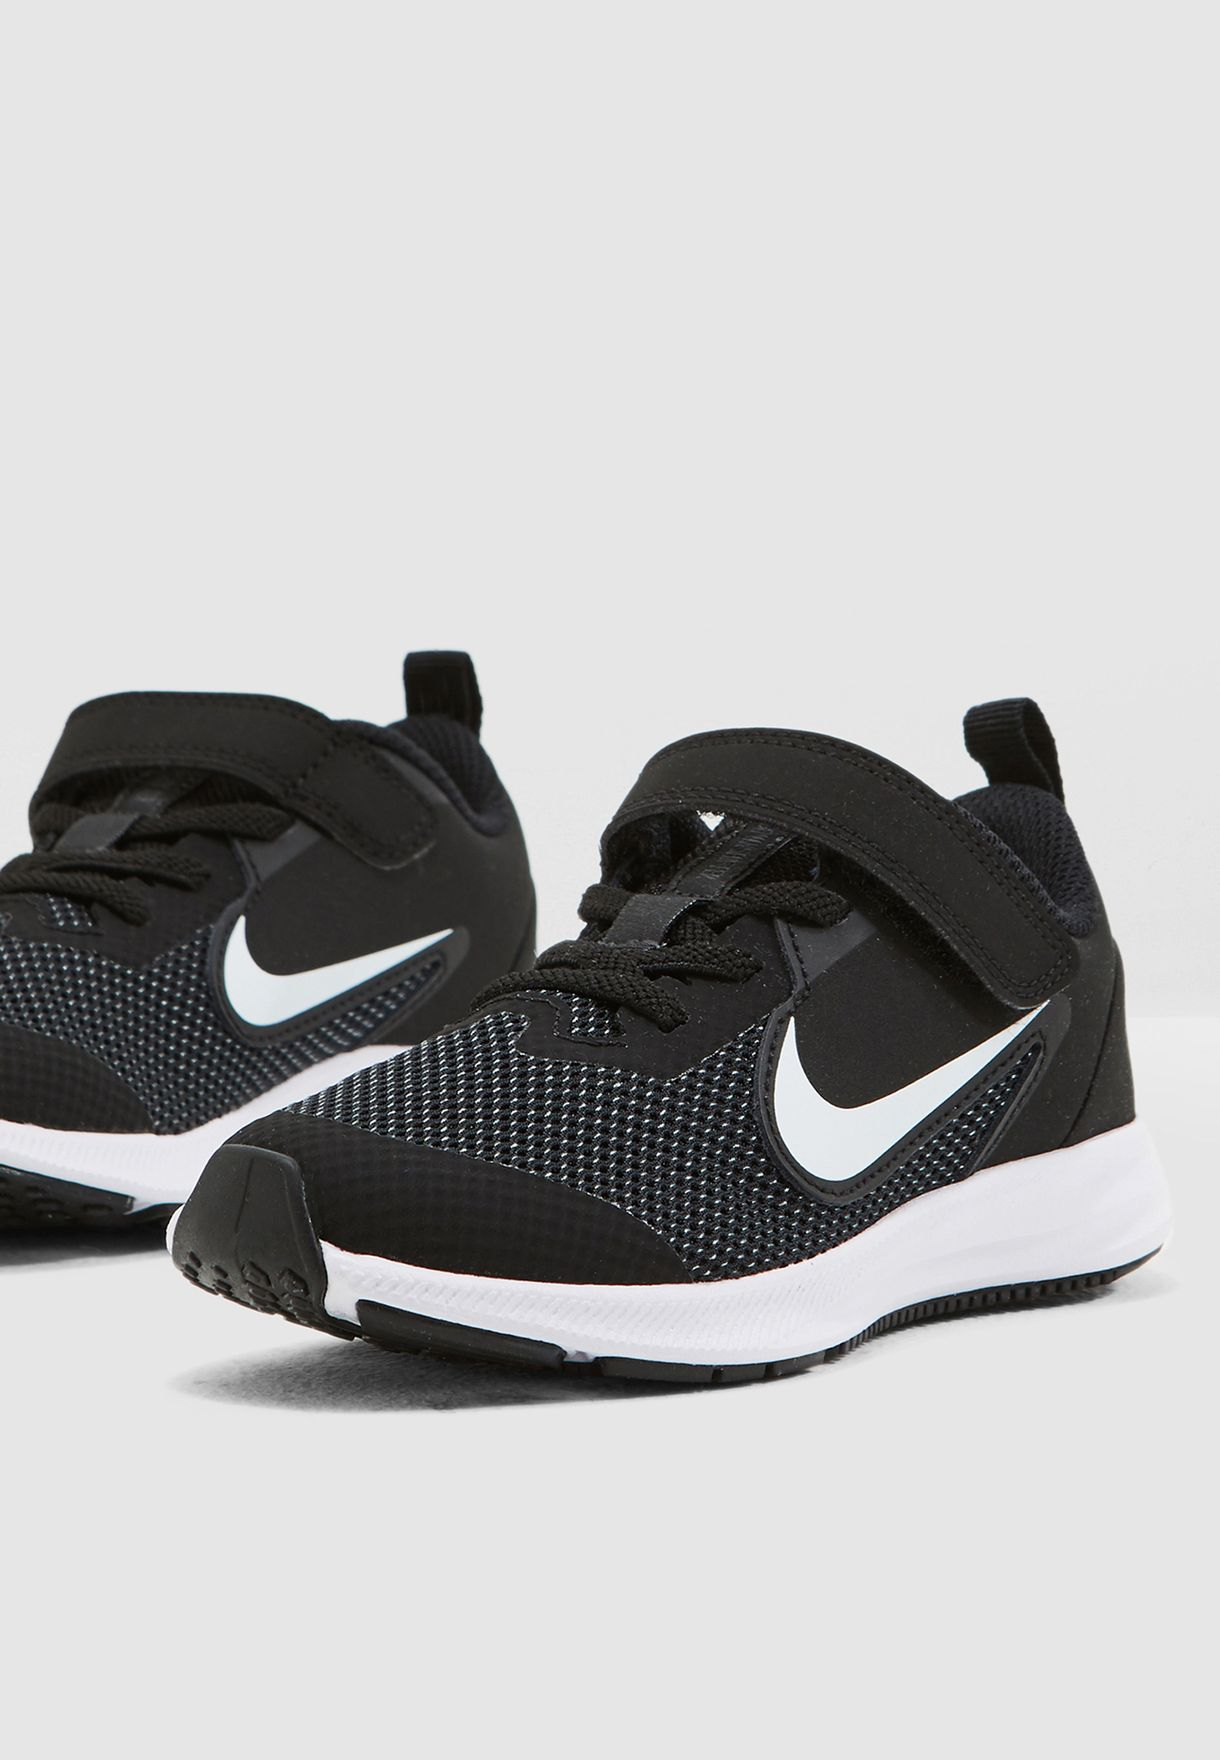 b716bcfb2e30 Shop Nike black Kids Downshifter 9 AR4138-002 for Kids in UAE ...